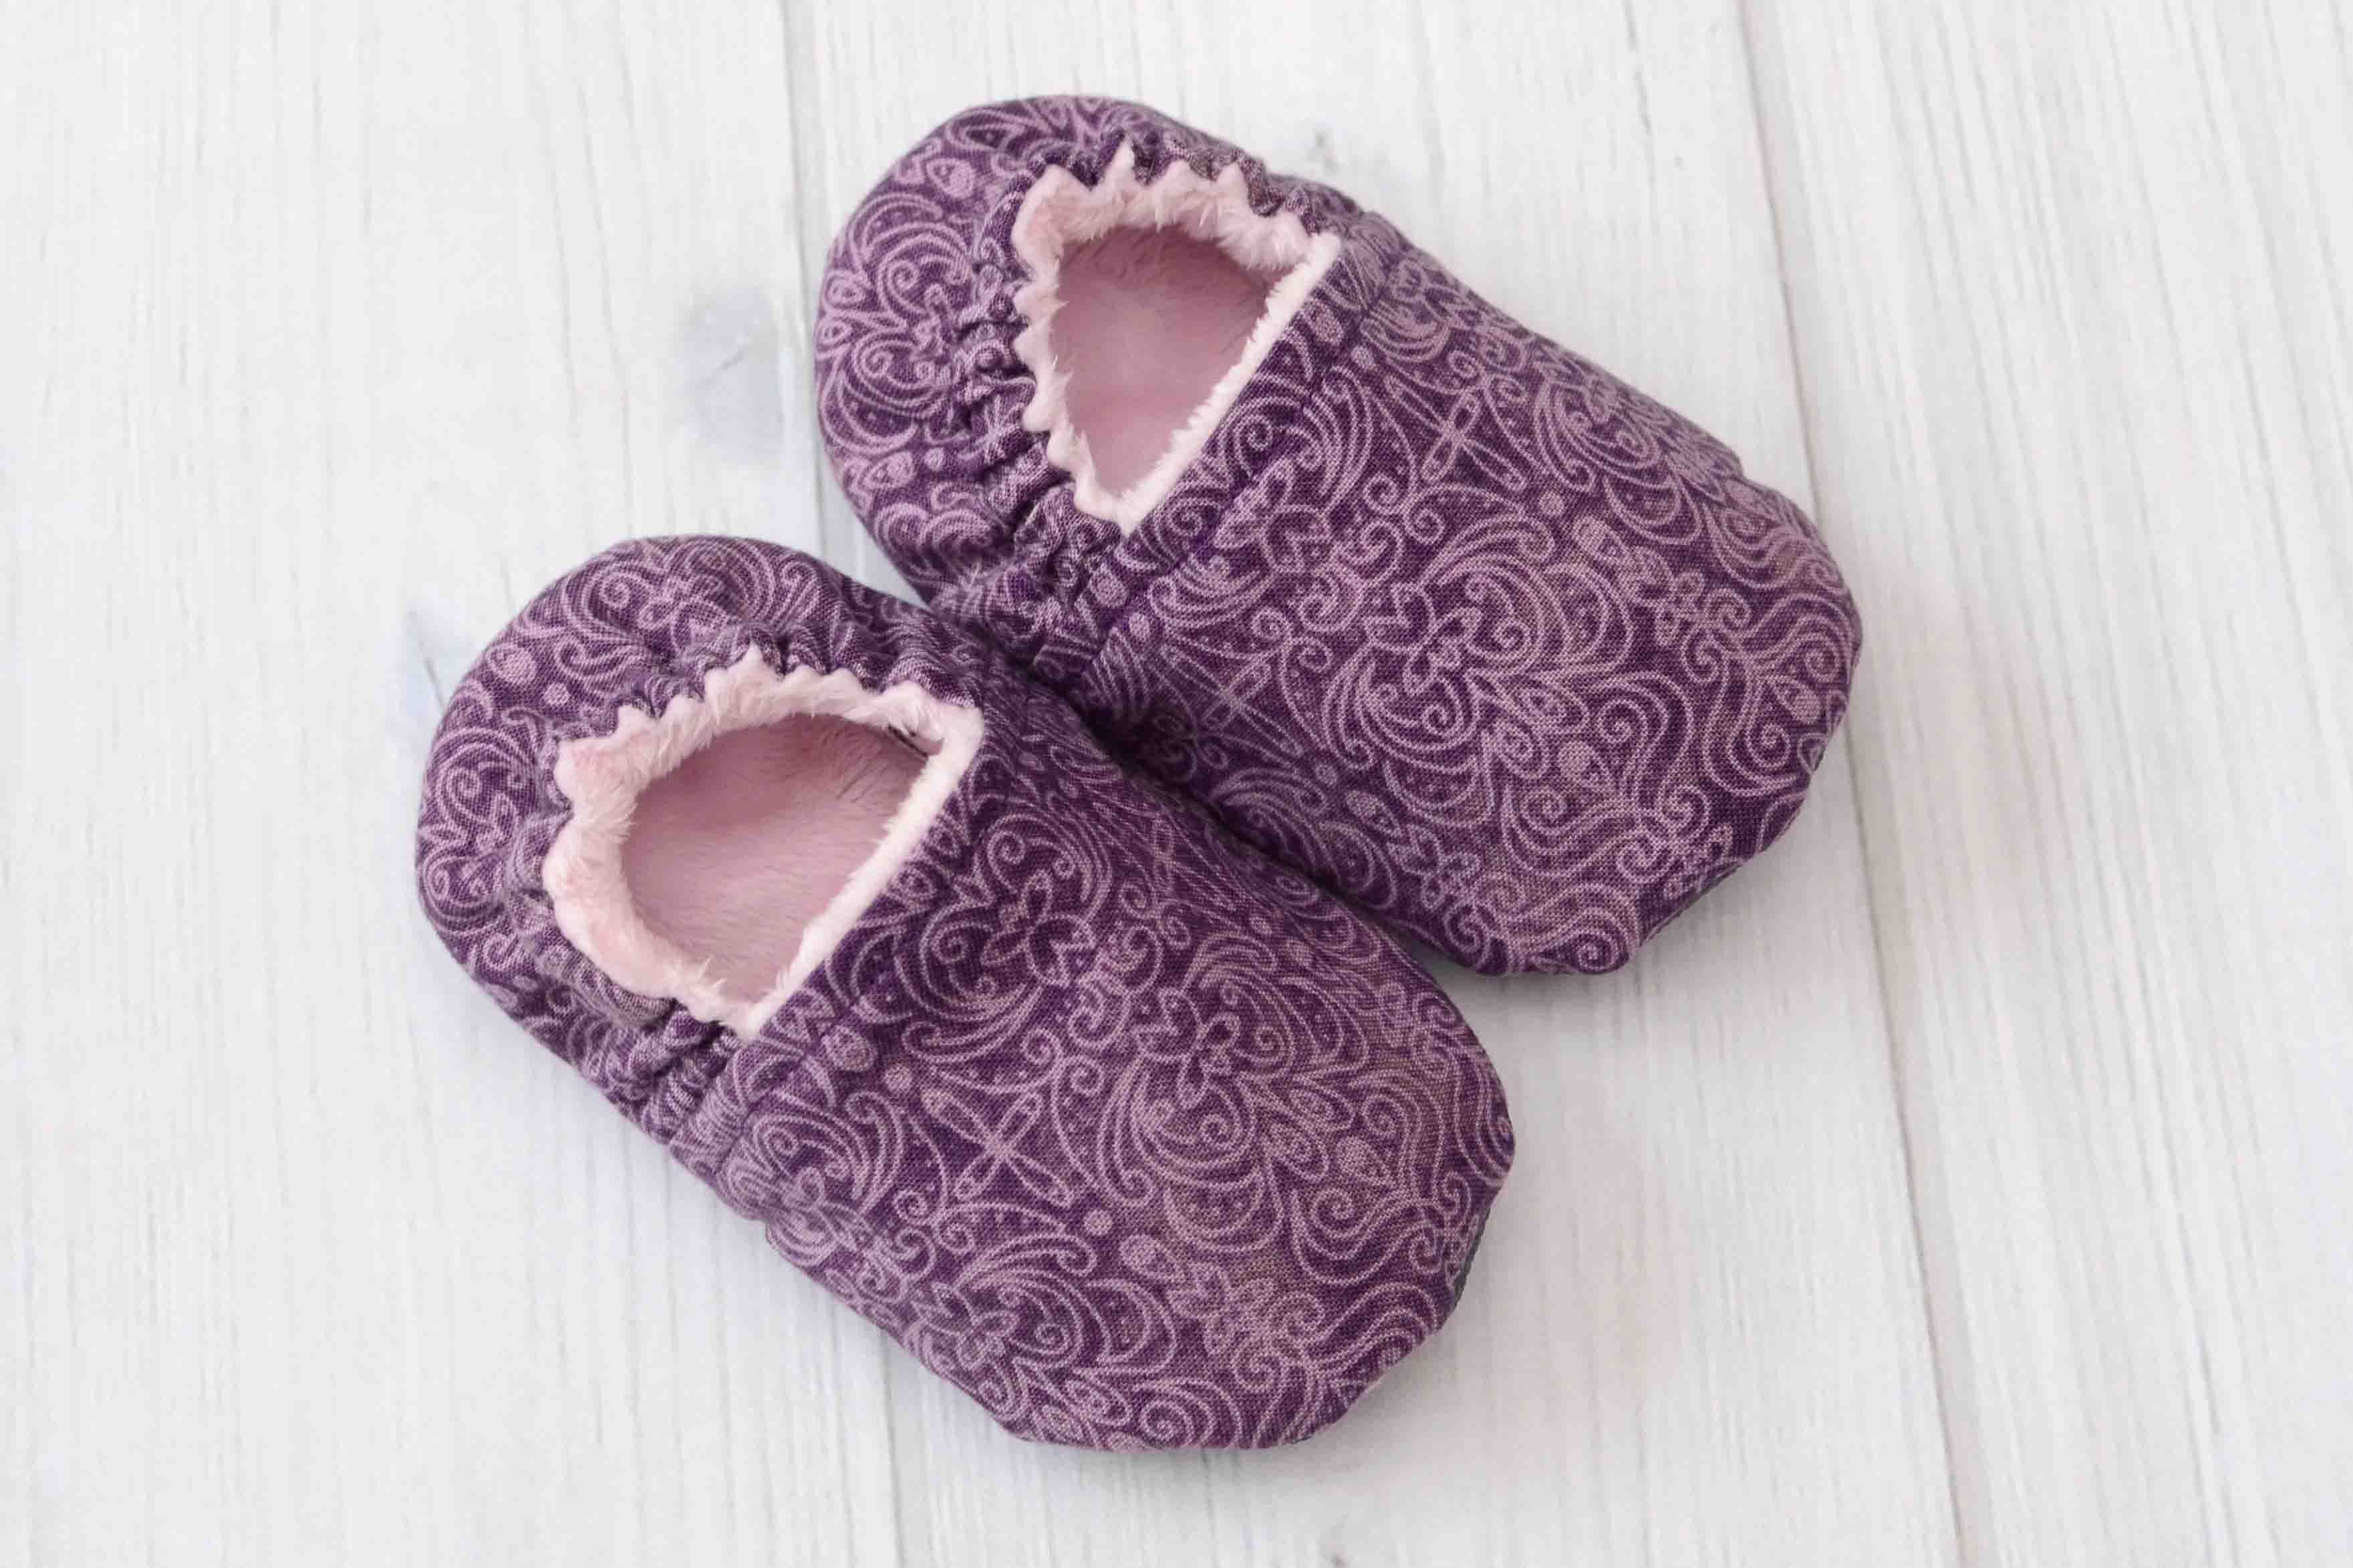 Plum Scroll Baby ShoesSize Medium 6 12 mos Labor of Love Baby